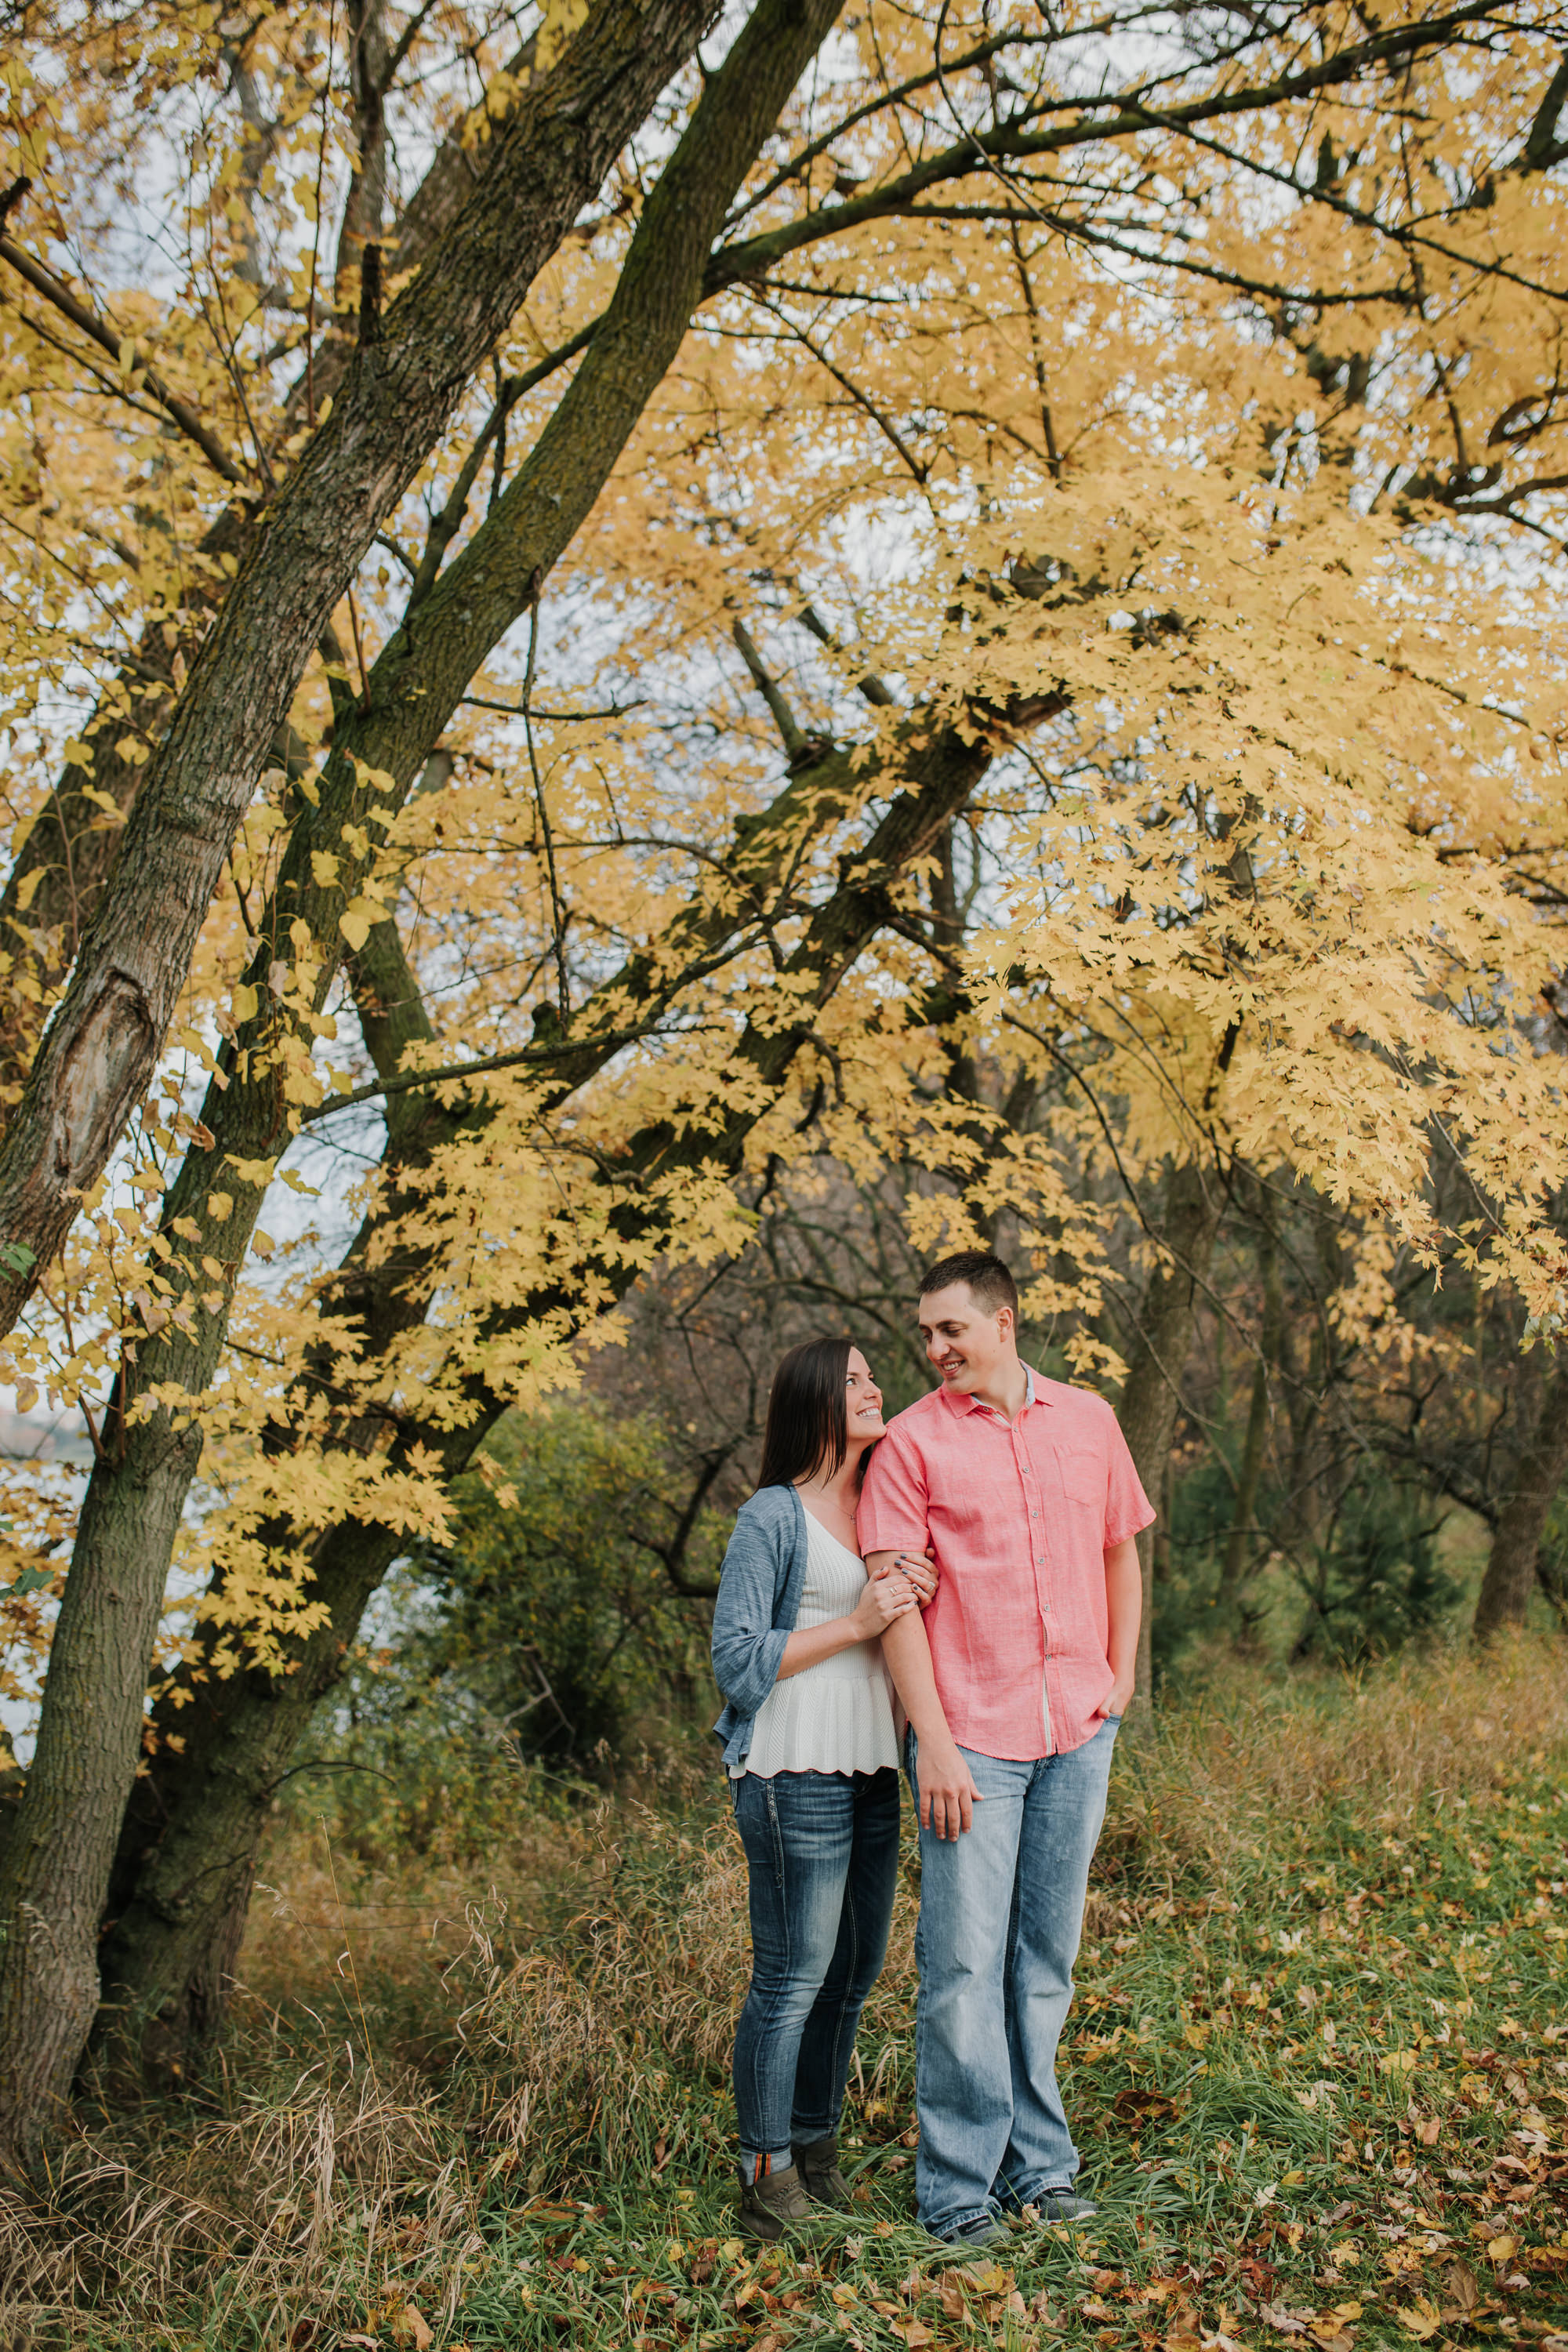 Hannah & Brett - Engaged - Nathaniel Jensen Photography - Omaha Nebraska Wedding Photograper - Omaha Nebraska Engagement Session - Chalco Hills Engagement Session-37.jpg